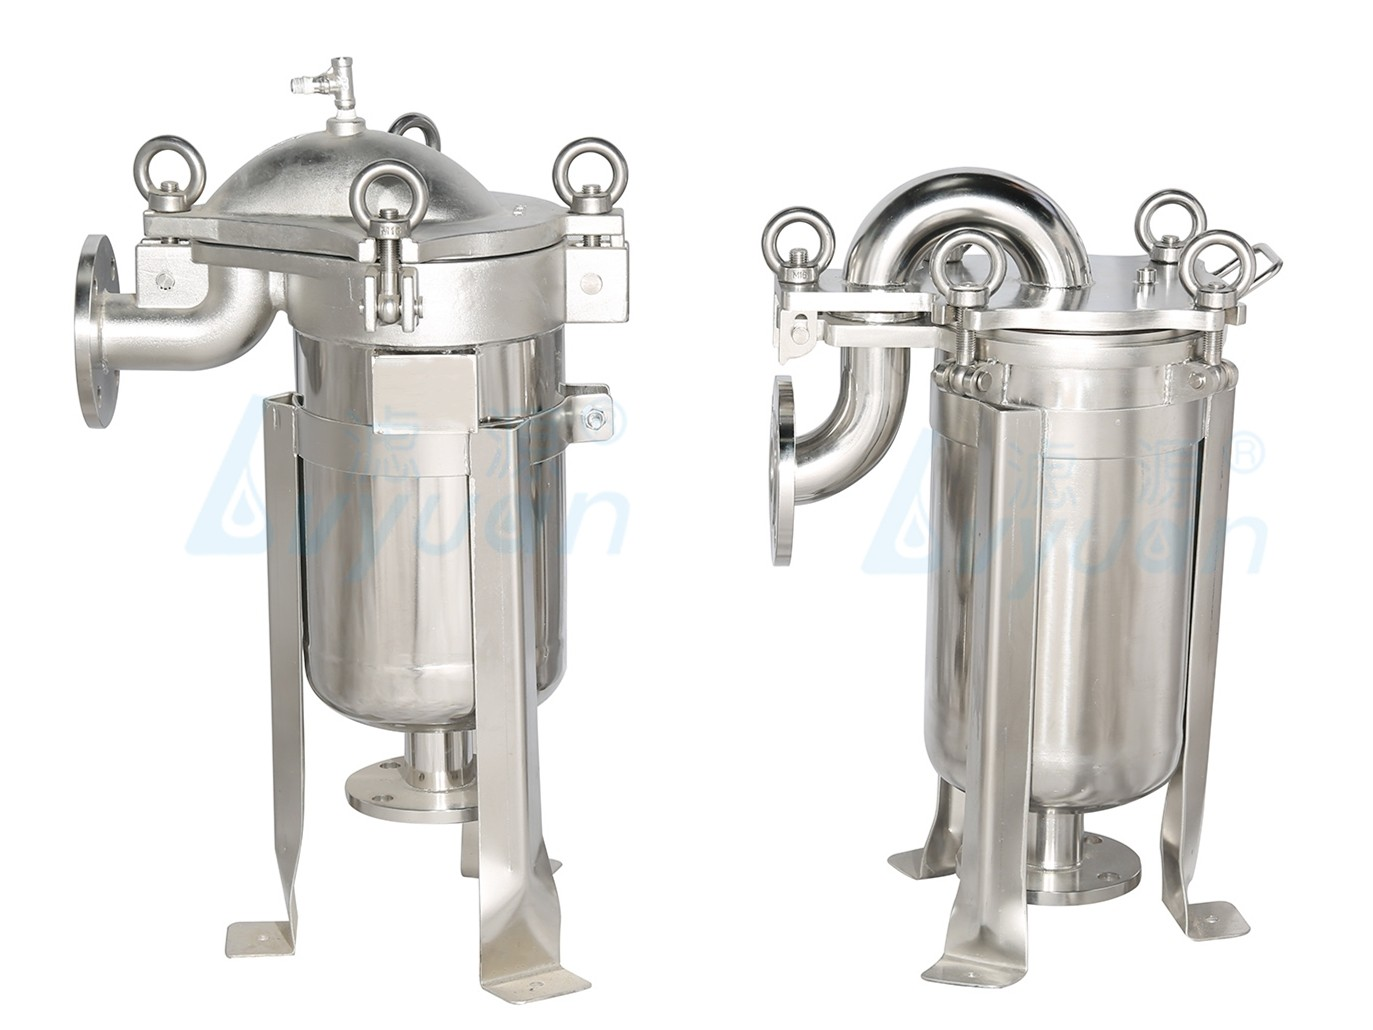 Lvyuan professional stainless steel filter housing with core for food and beverage-2